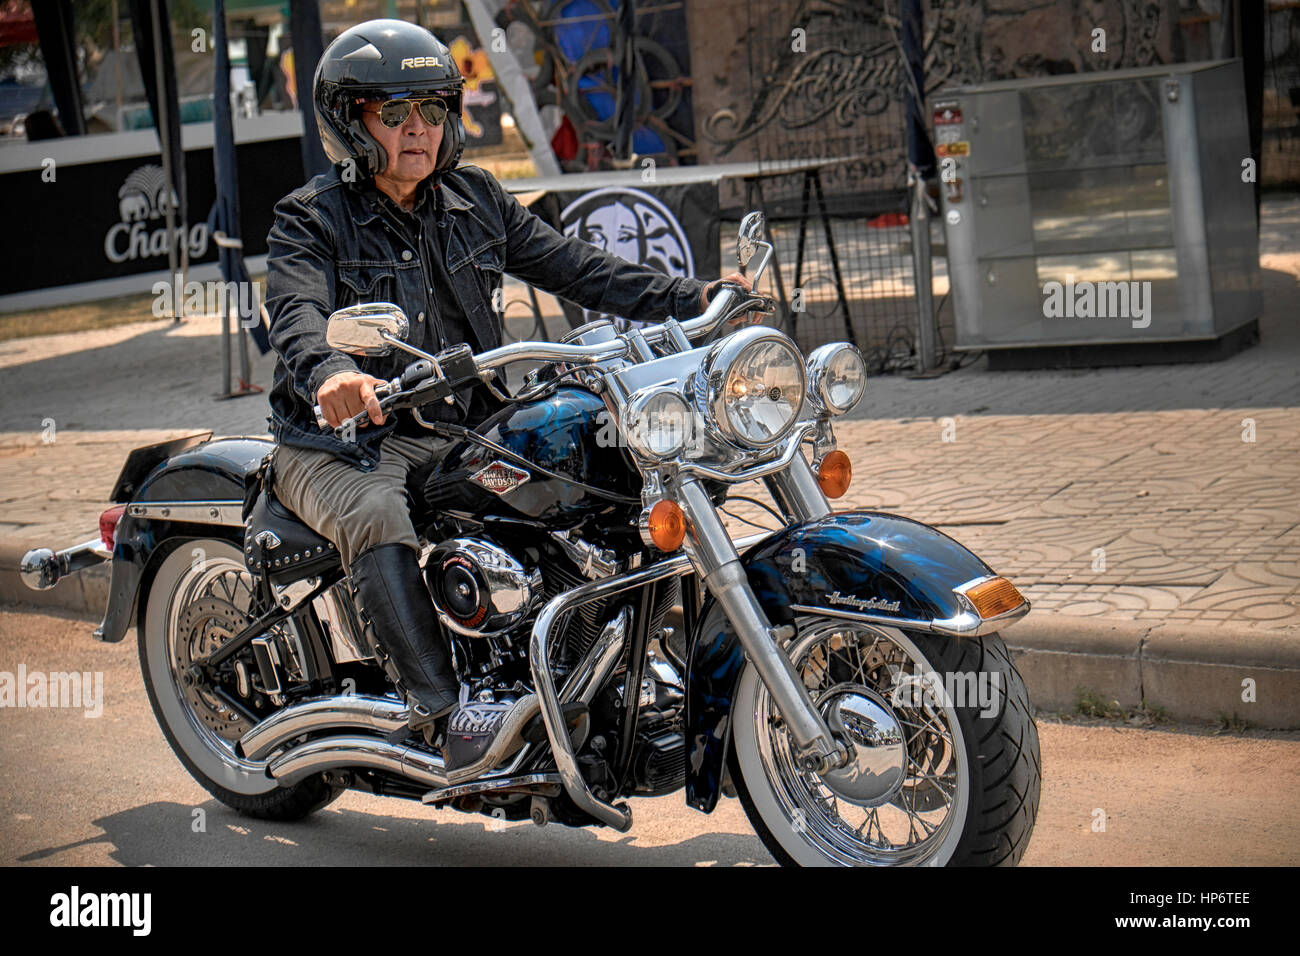 man ride harley davidson motorcycle stock photos man ride harley davidson motorcycle stock. Black Bedroom Furniture Sets. Home Design Ideas